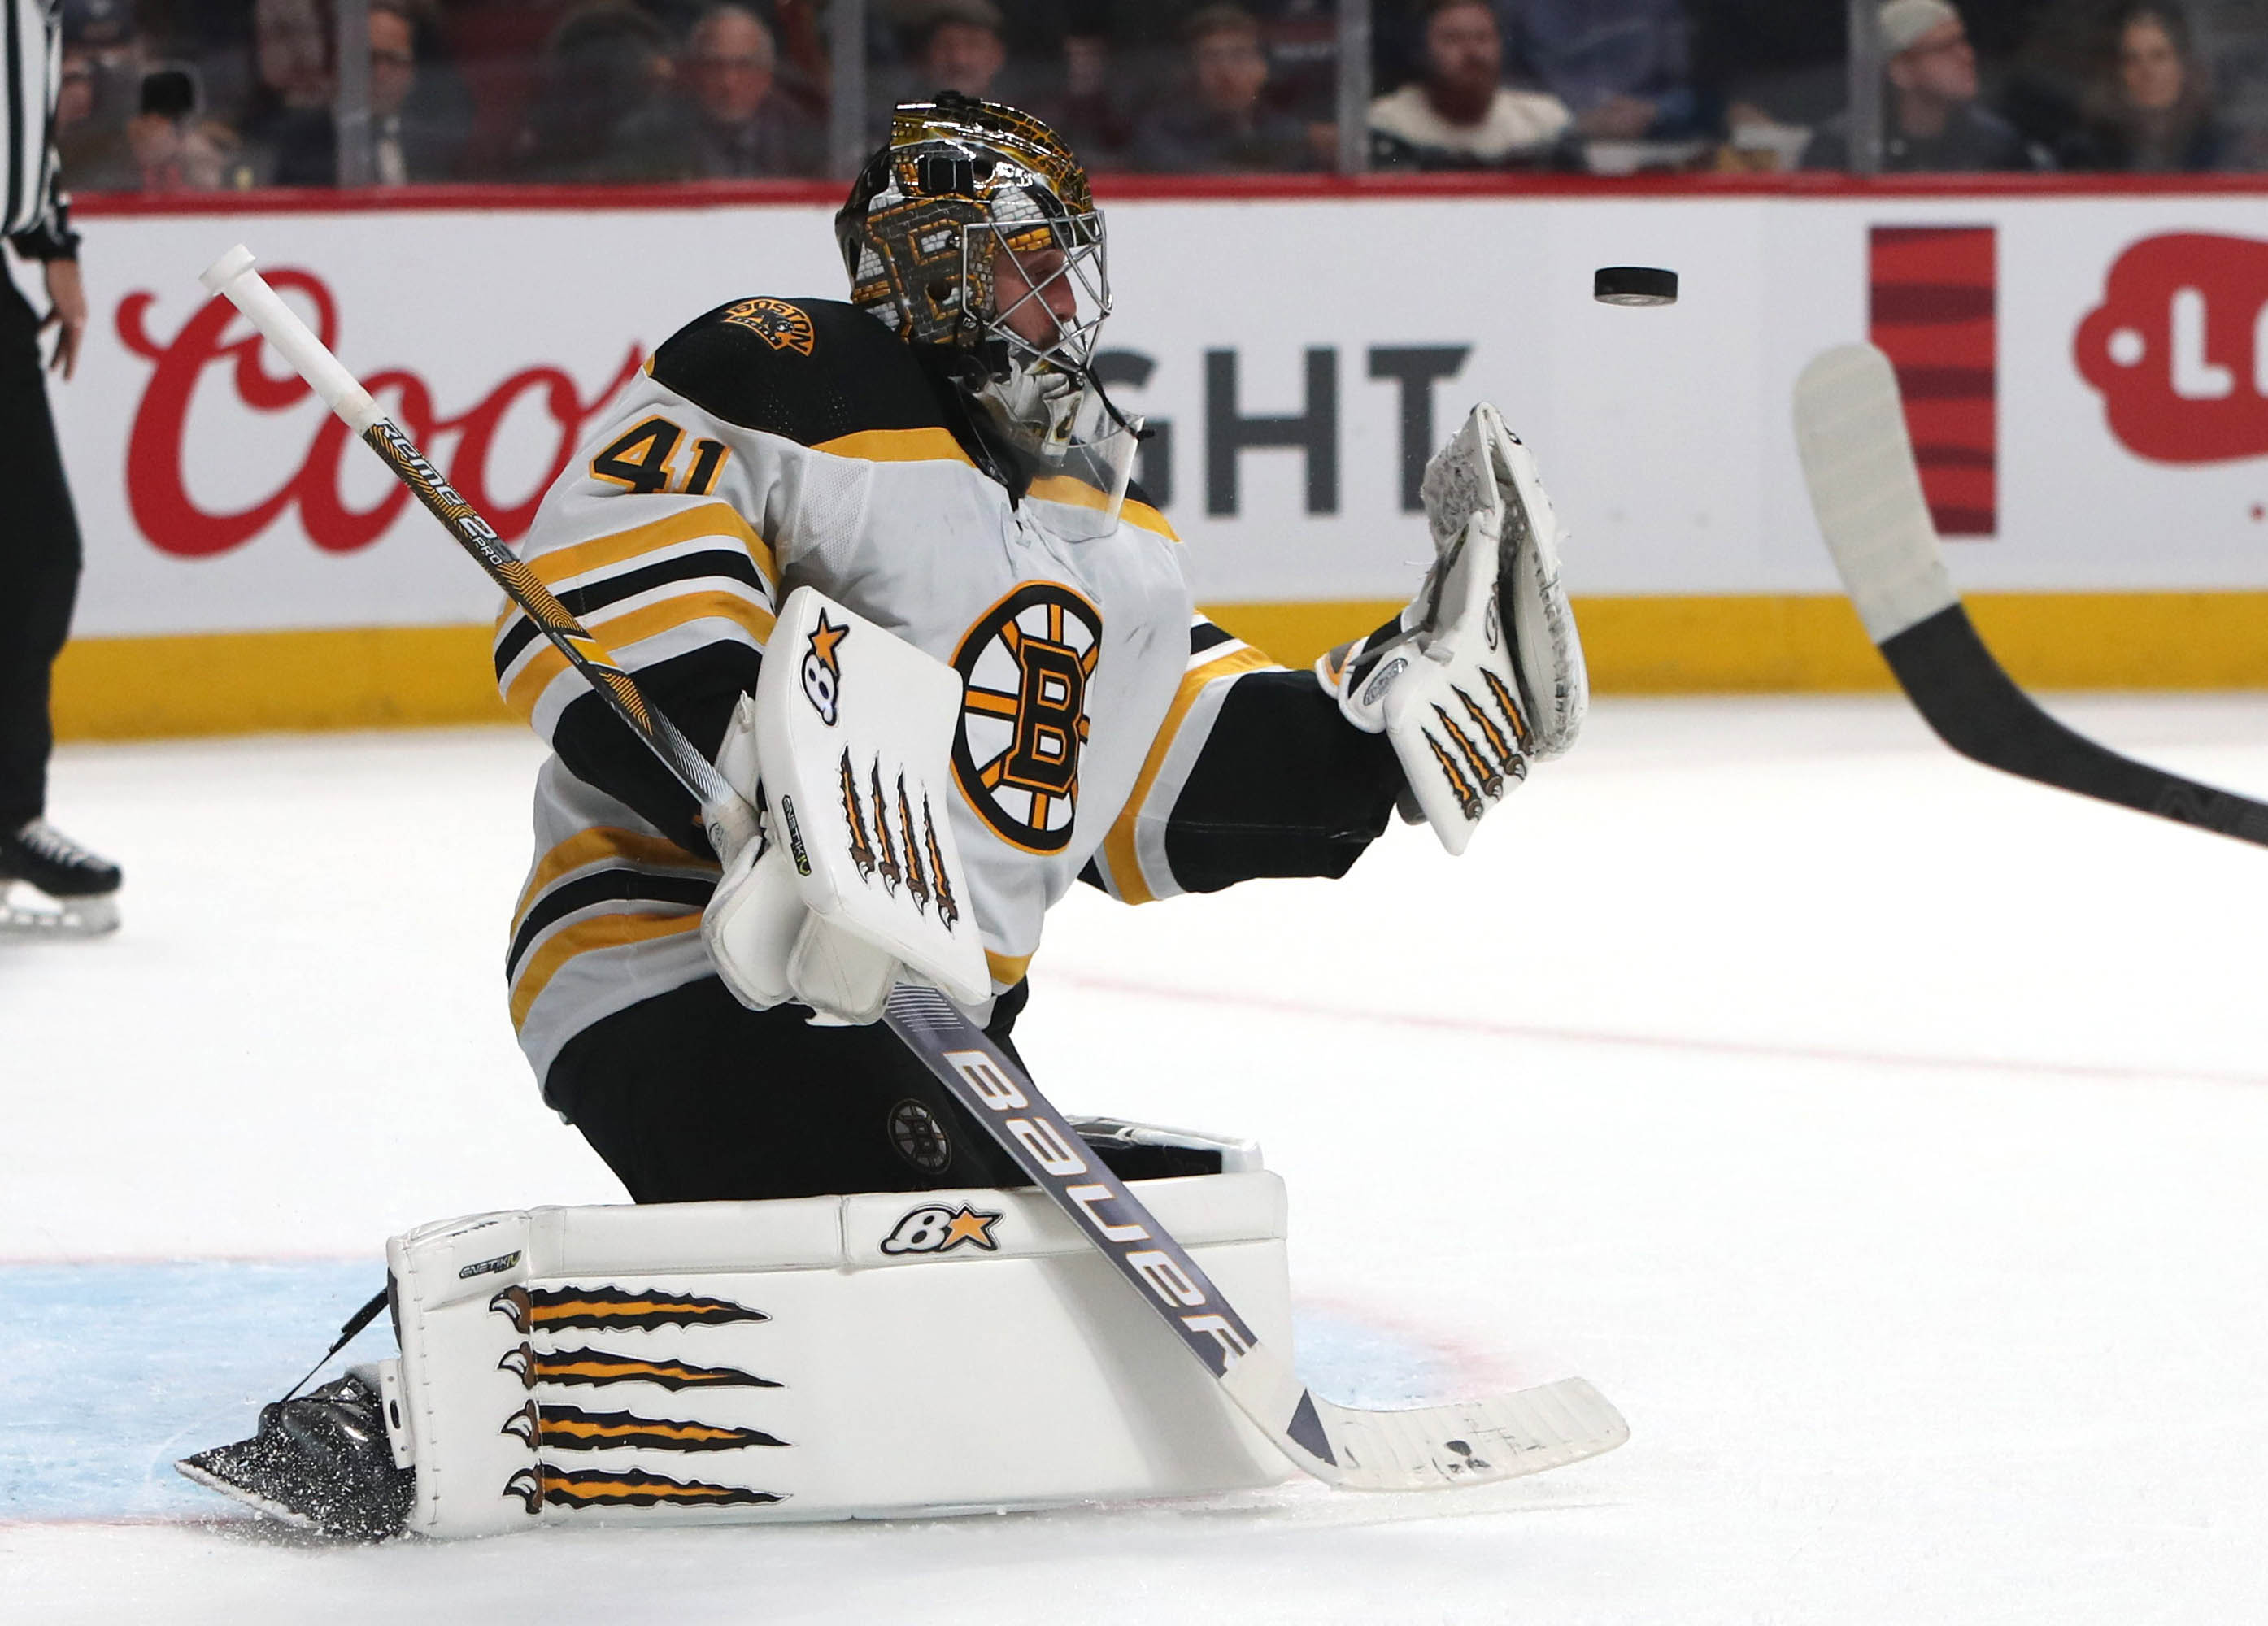 Bruins come to terms with Jaroslav Halak on a contract extension